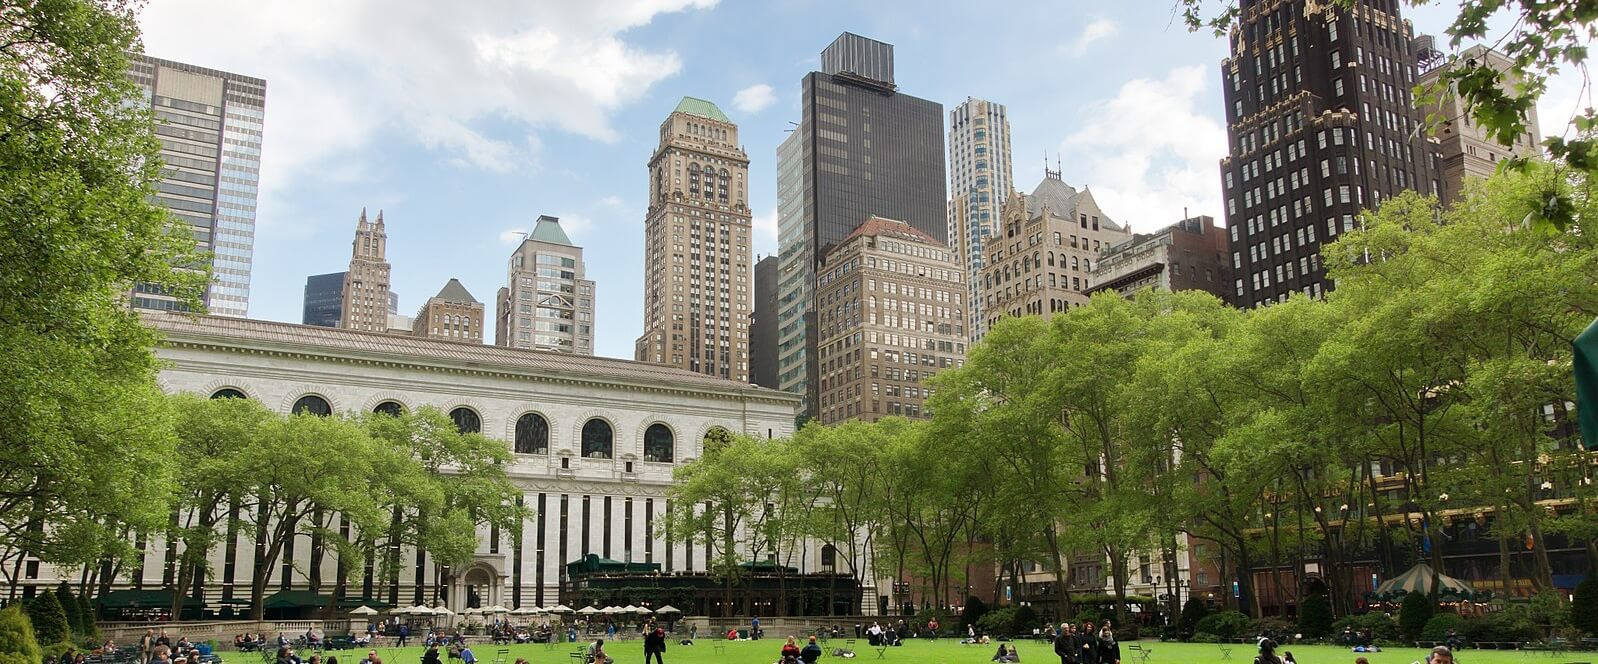 Luggage storage locations in Bryant Park